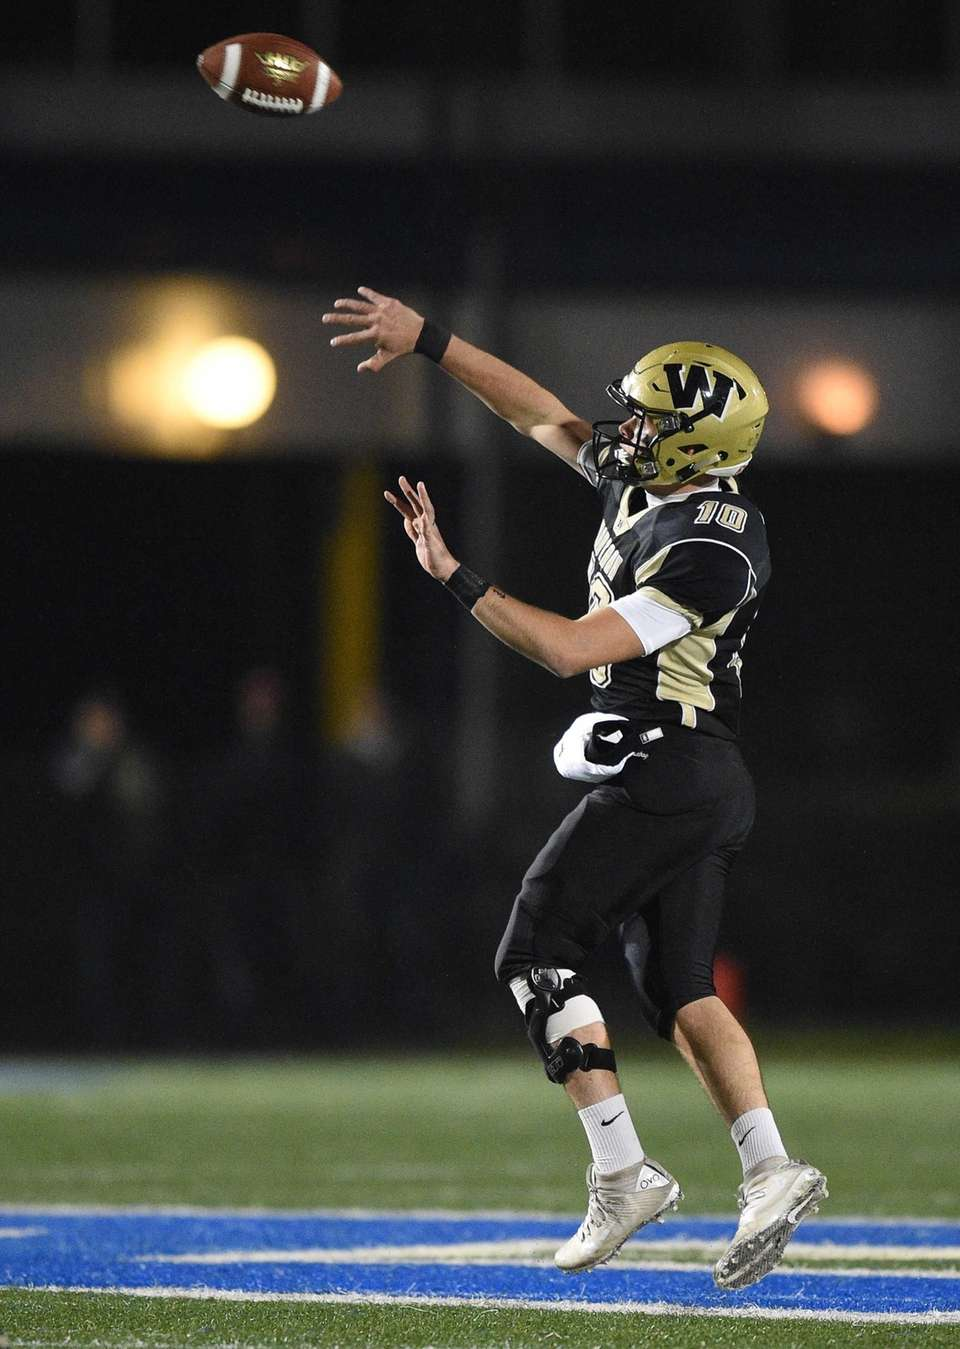 Wantagh quarterback Jake Castellano passes the football against